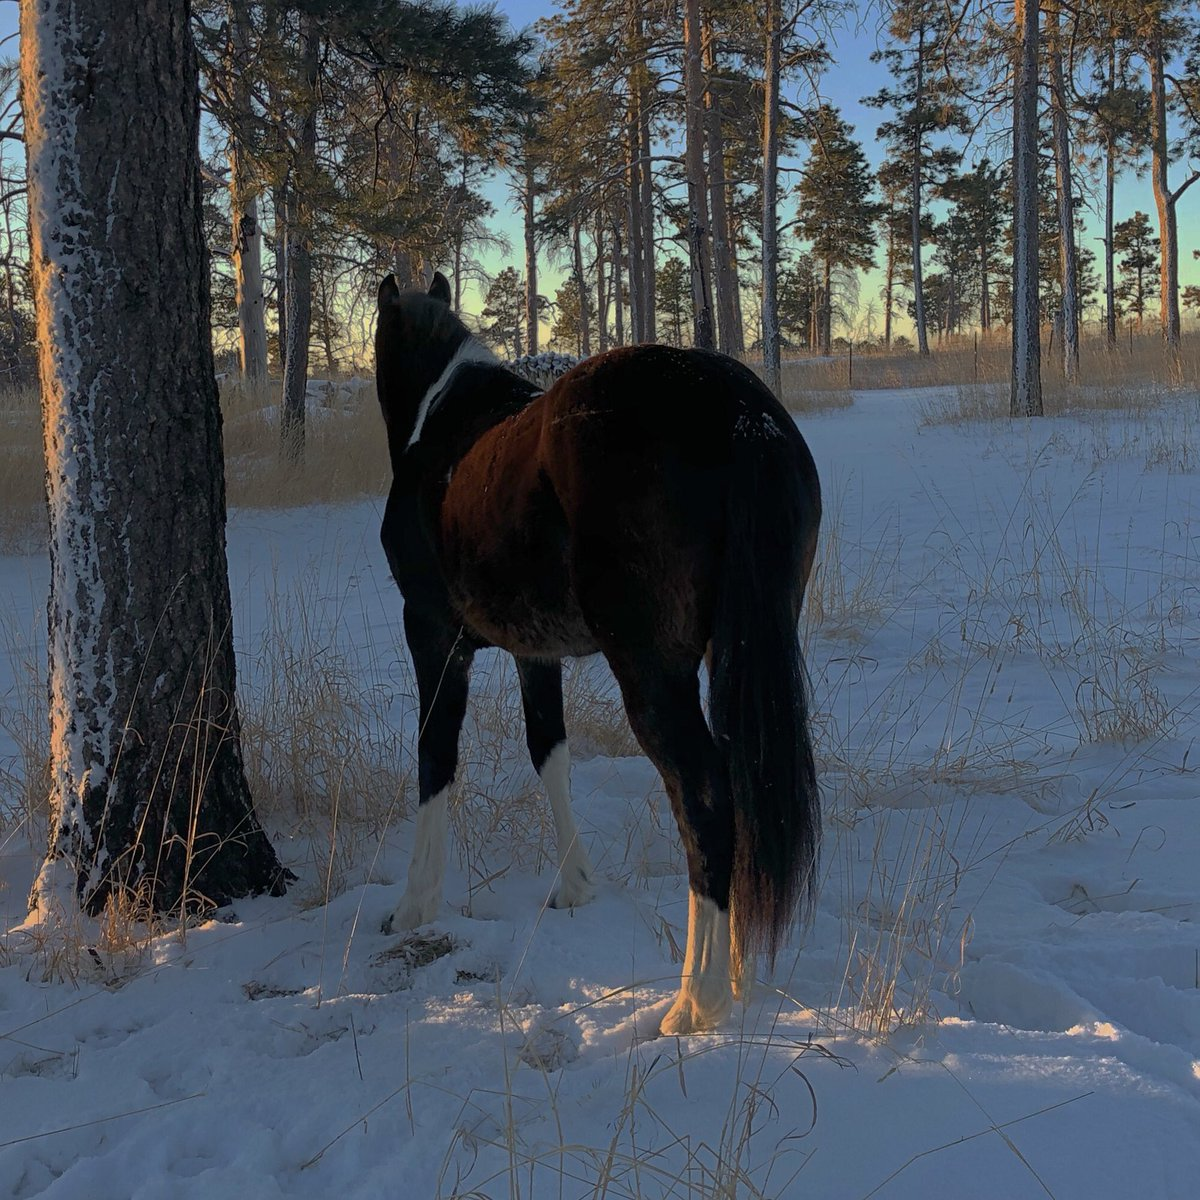 """""""When you arise in the morning, think of what a precious privilege it is to be alive - to breathe, to think, to enjoy, to love."""" -Marcus Aurelius   #hoofbeatstheatre #peacefulmorning #winterwonderland #equestrianlife #horses #friesiansporthorse #colorado #forest #wednesdaywisdompic.twitter.com/tRcLHKW1Zw"""